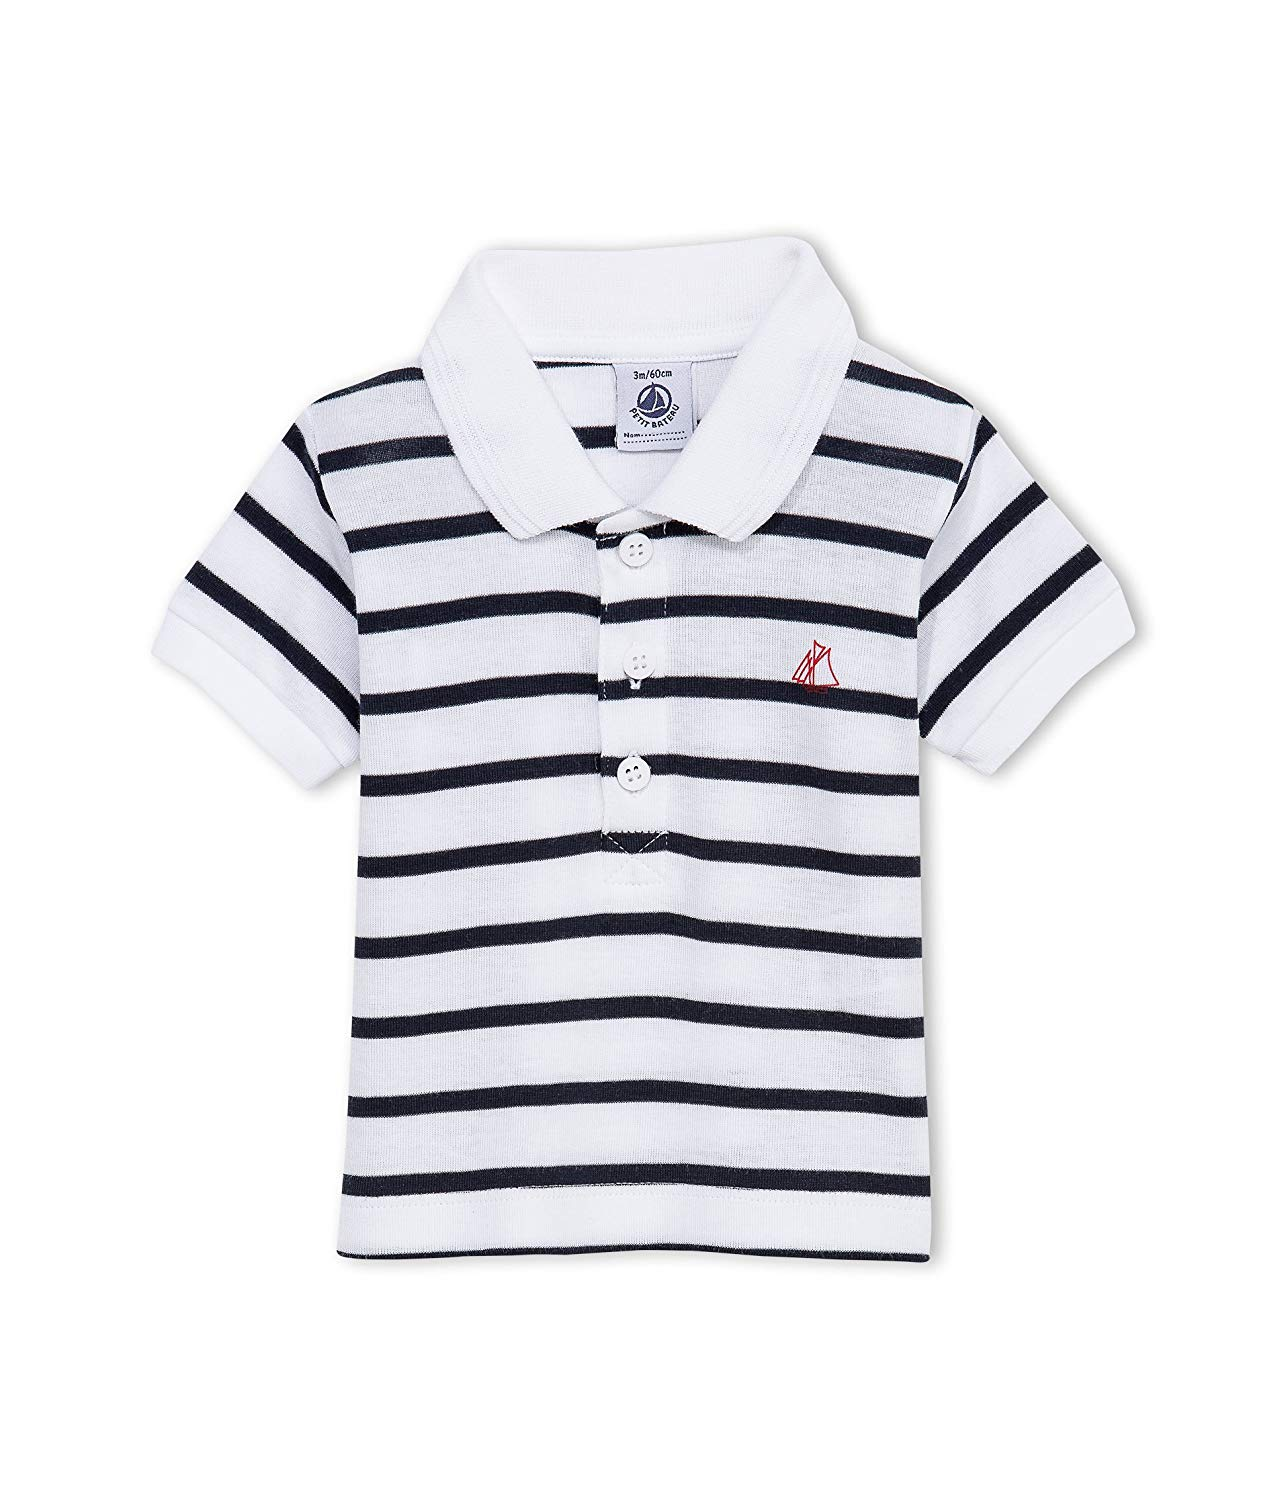 1a4588544c Get Quotations · Petit Bateau Striped Polo (Baby) - Navy/White-3 Months